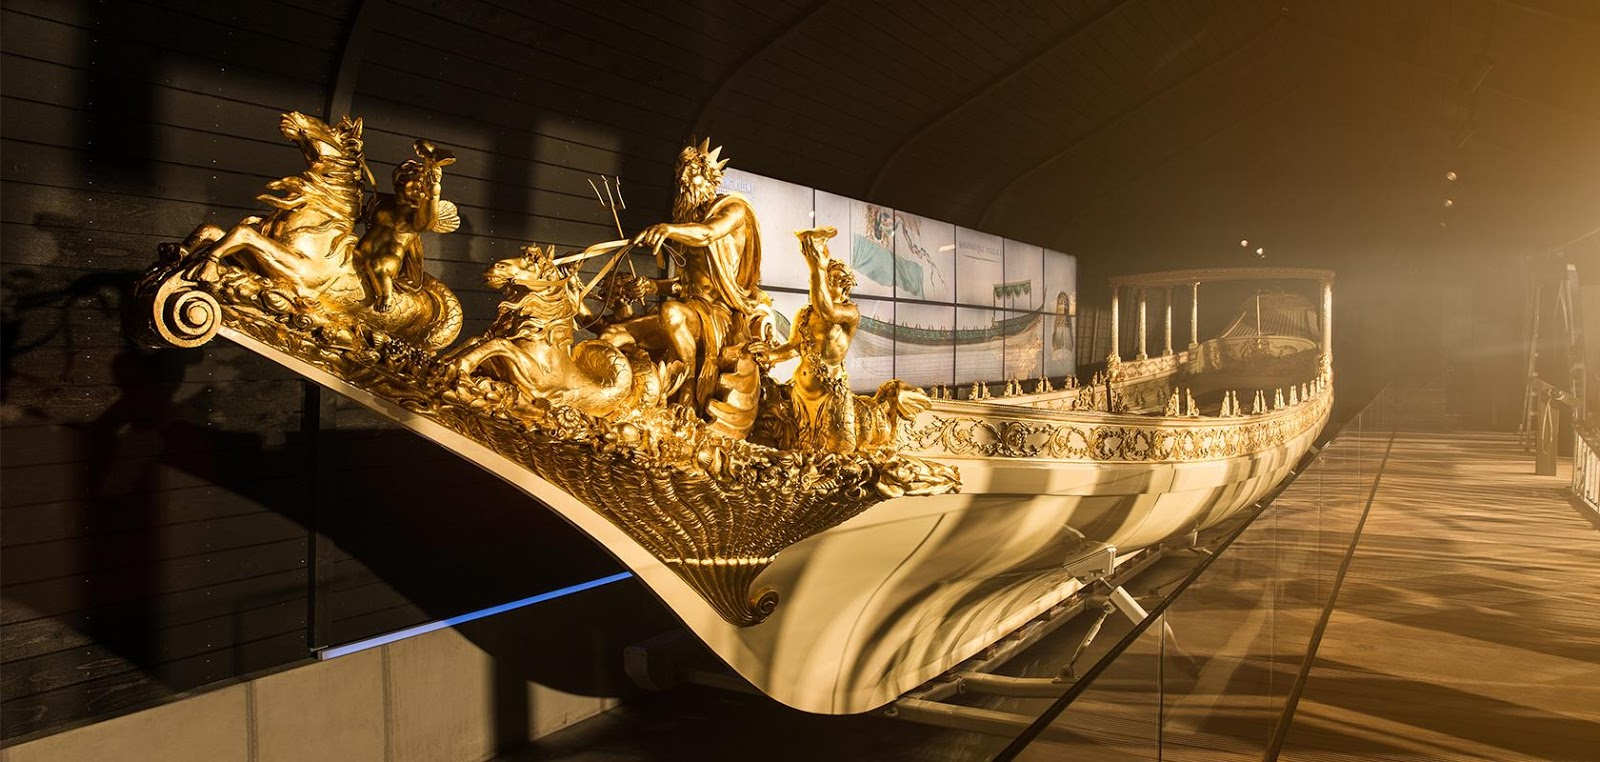 Royal Barge in the Maritime Museum, Amsterdam